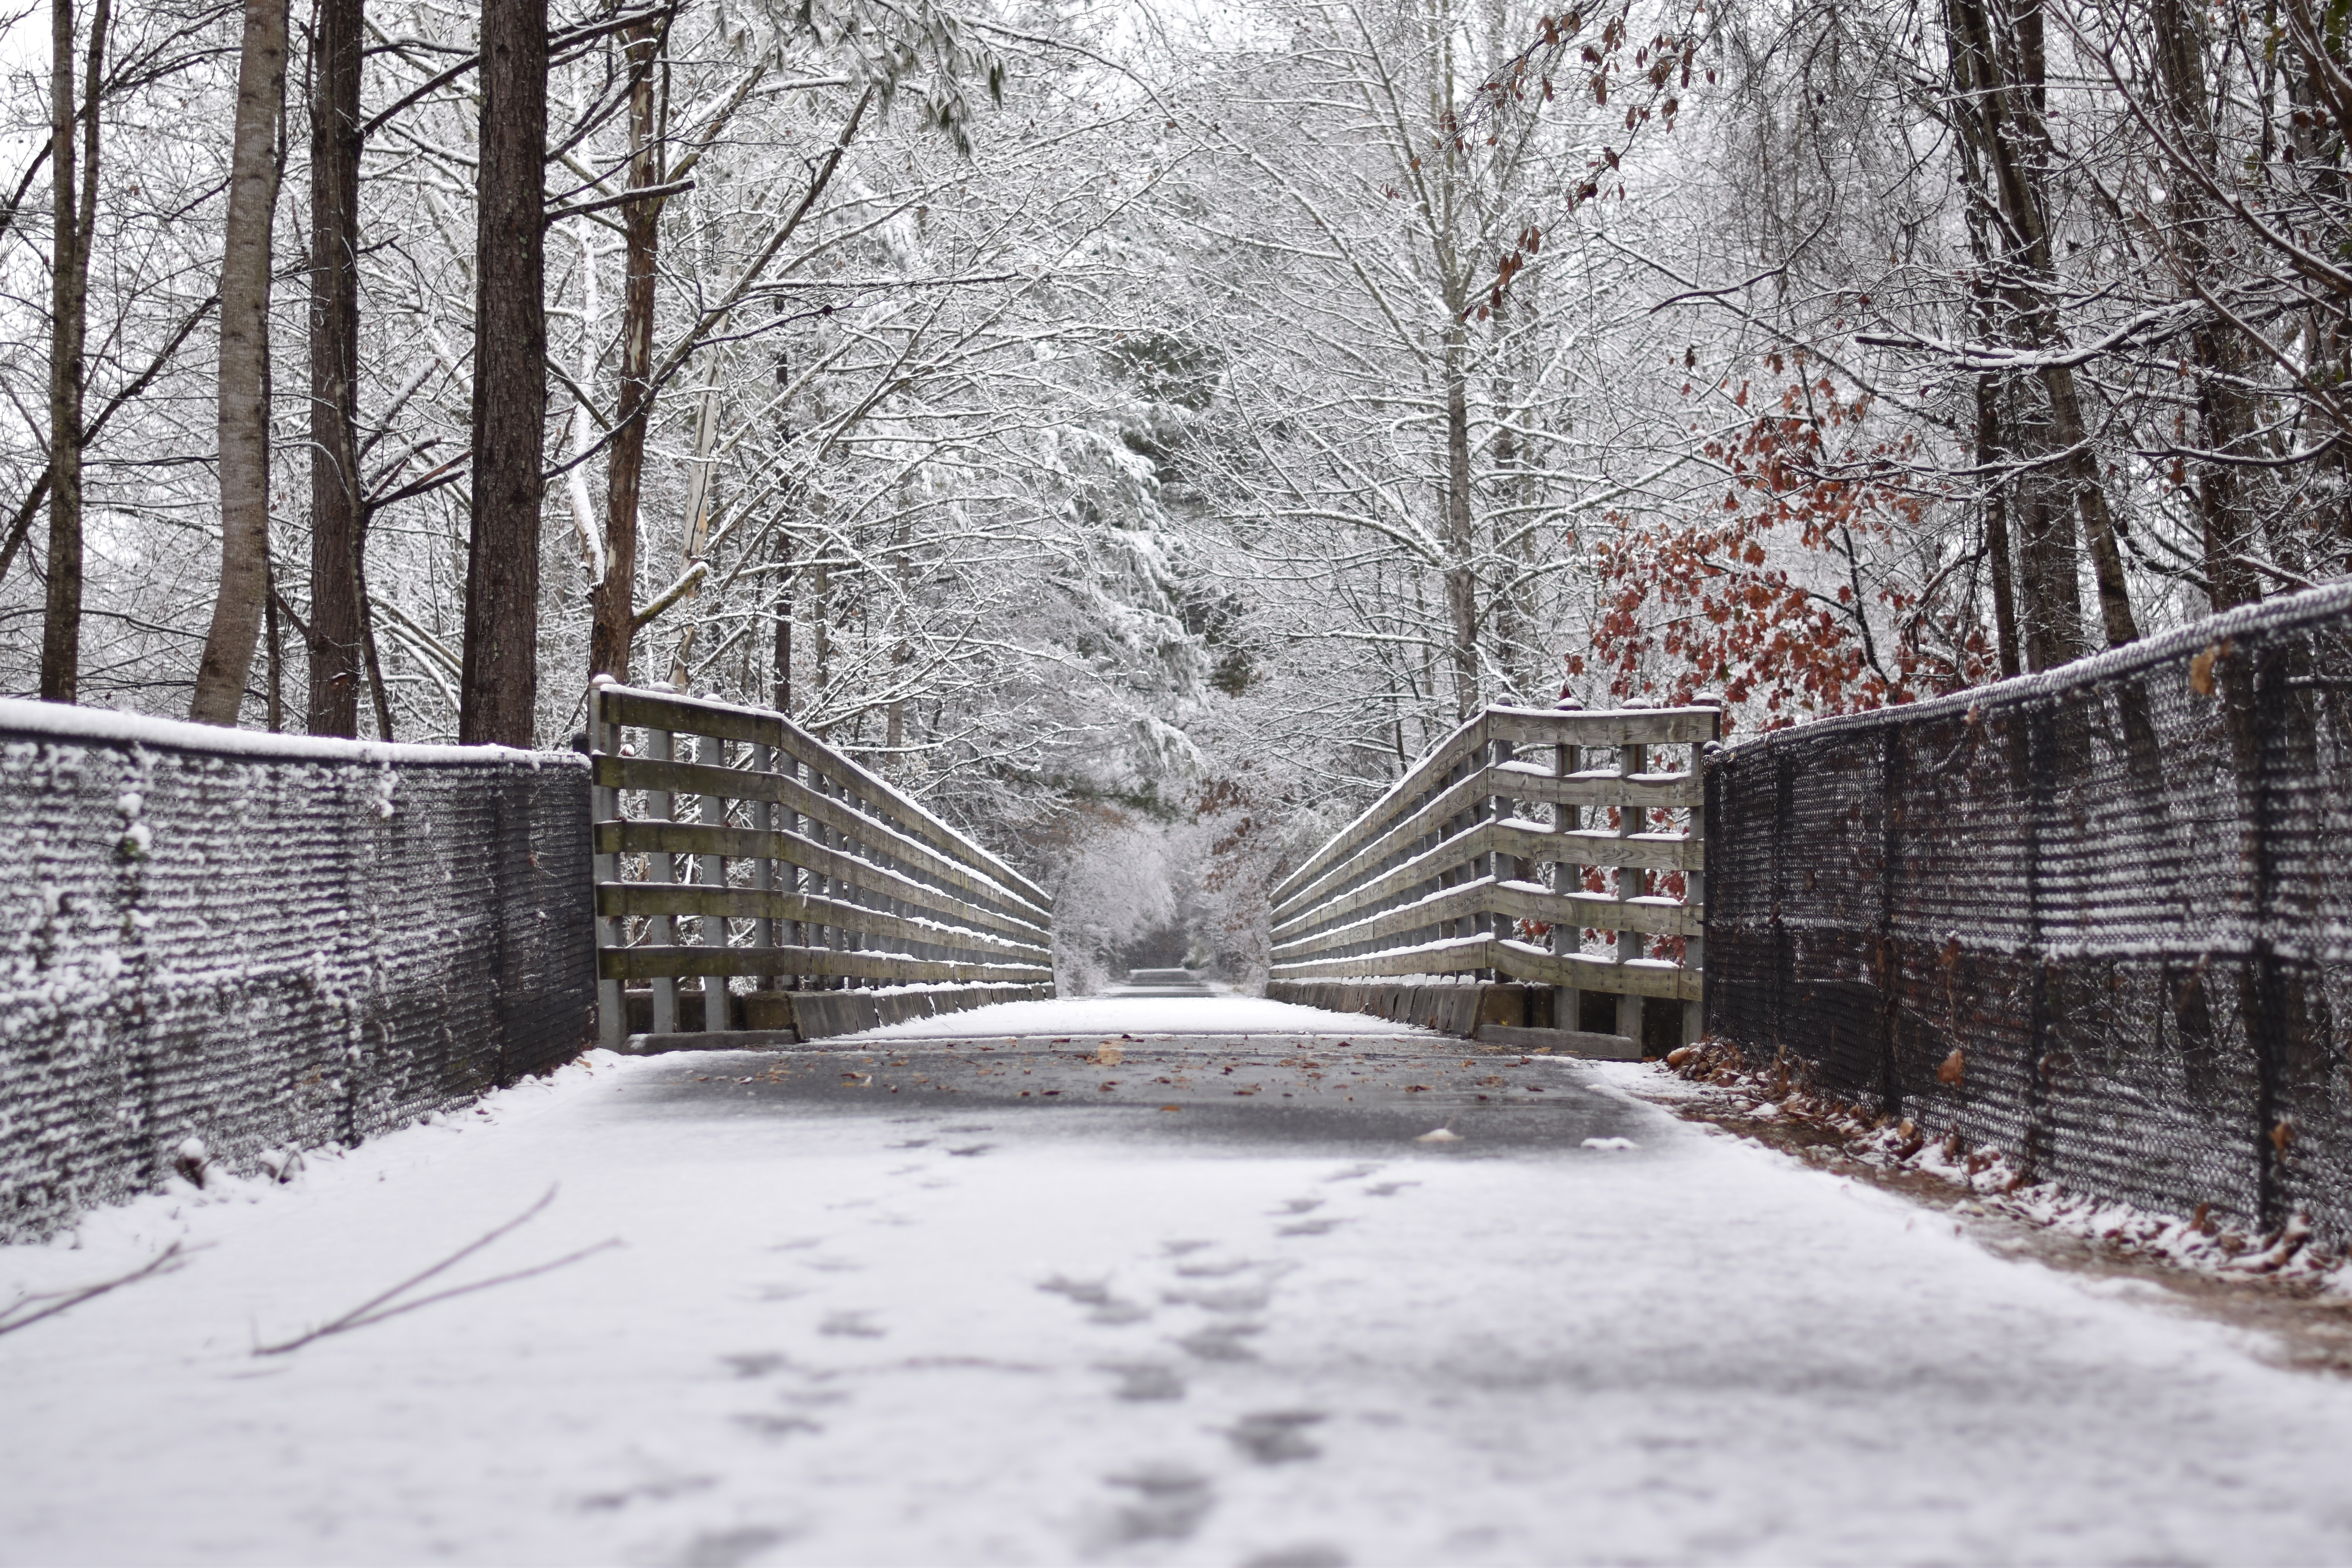 snow covered bridge in between lined trees